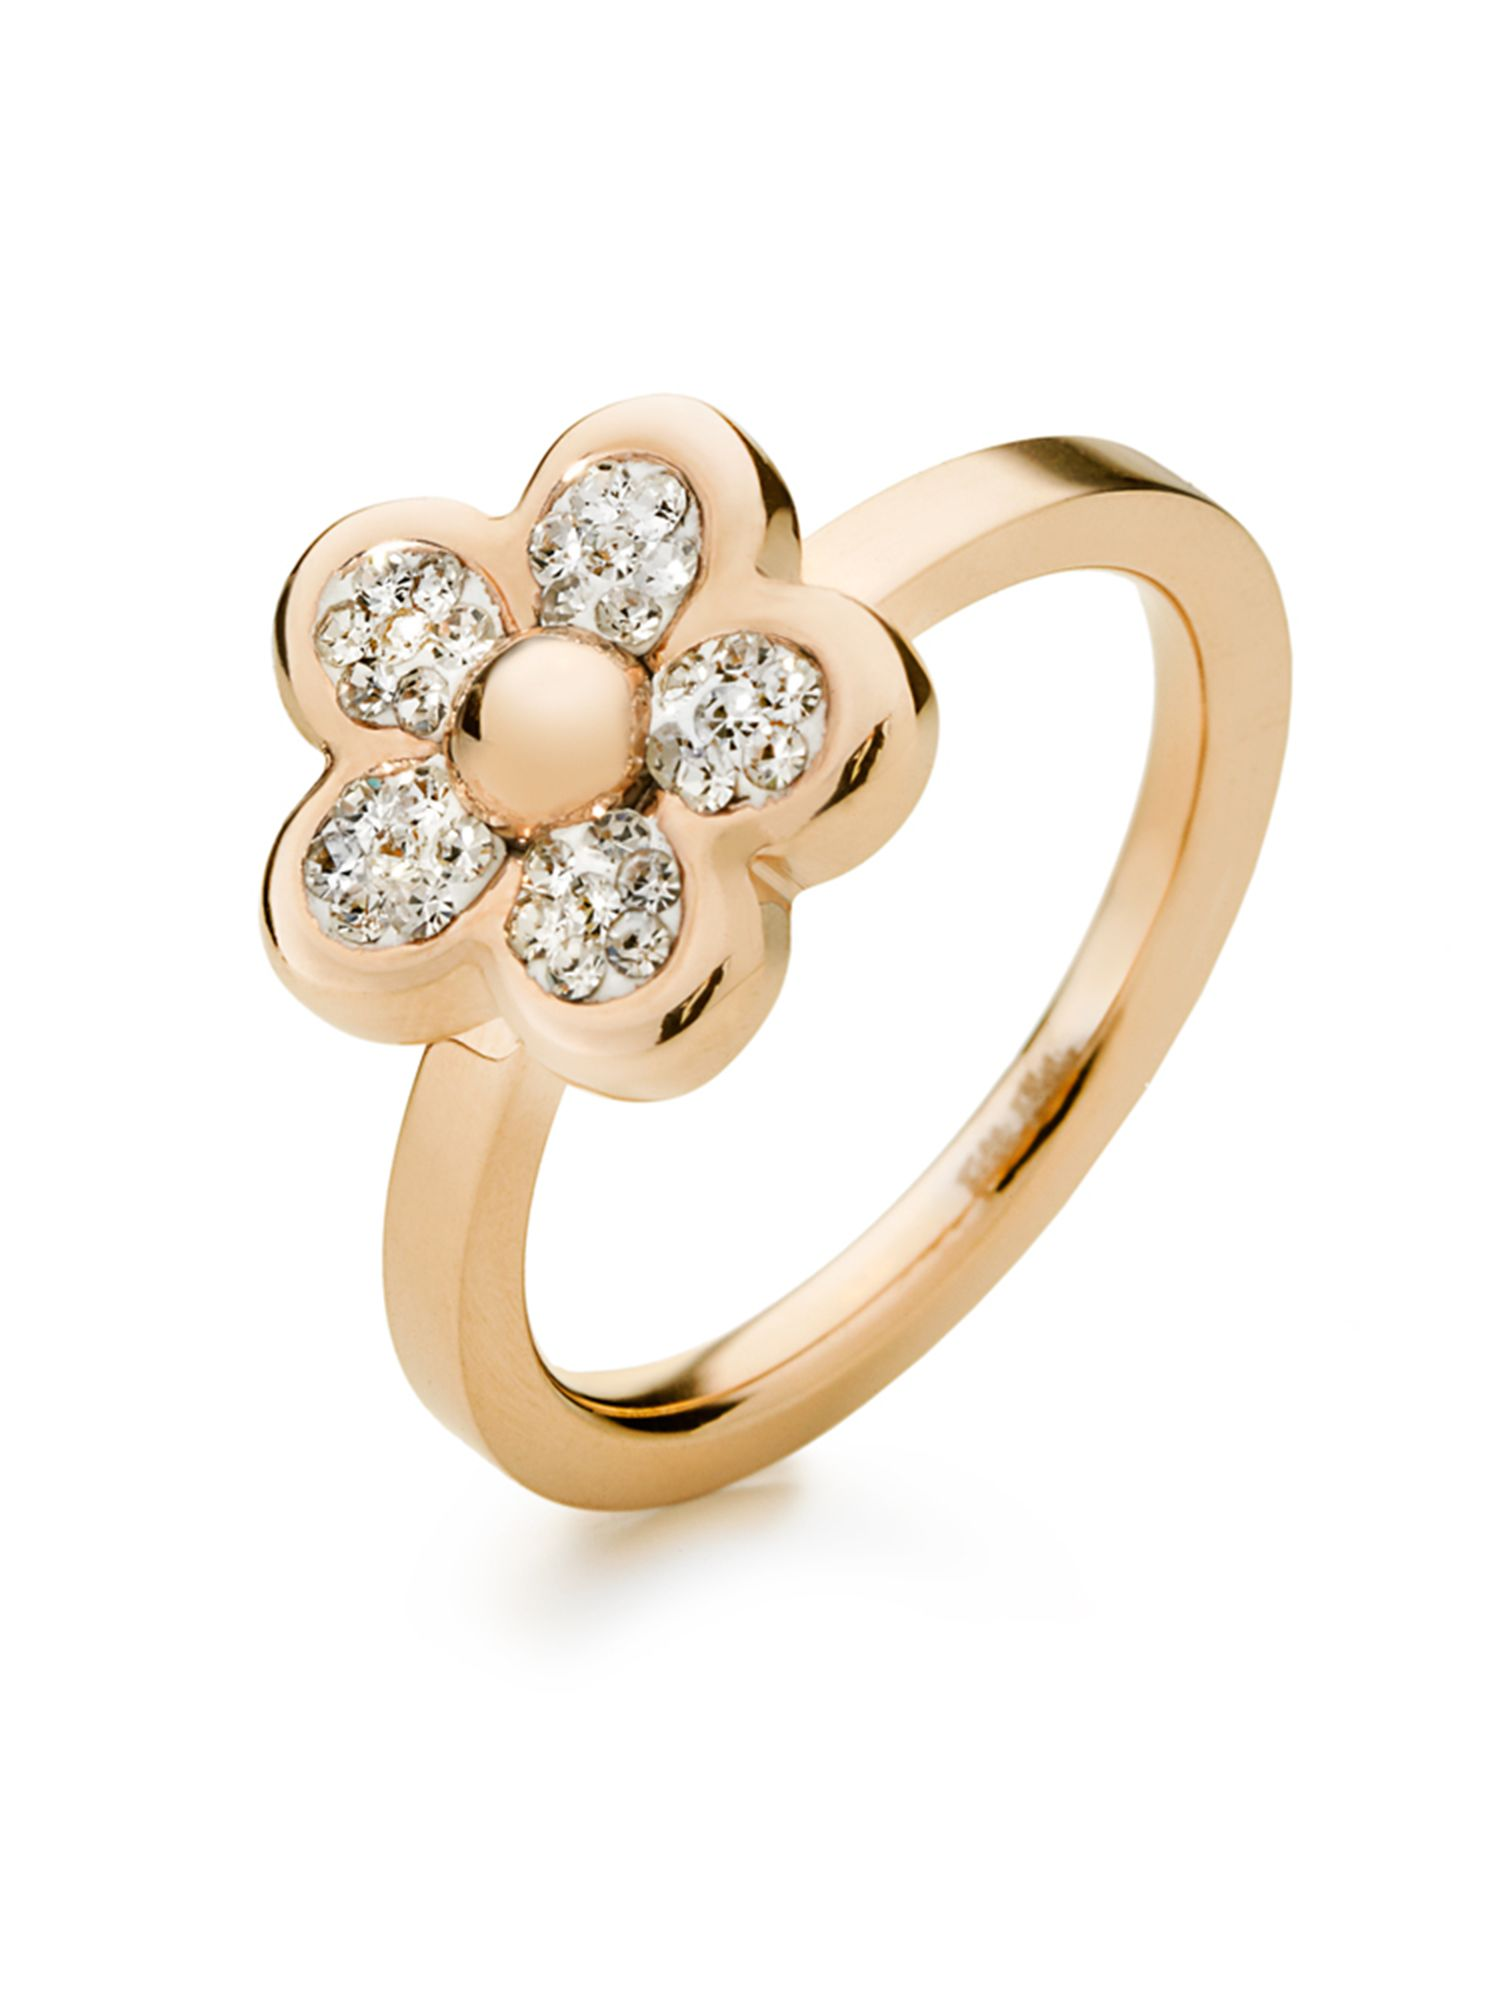 Follie di fiori ring